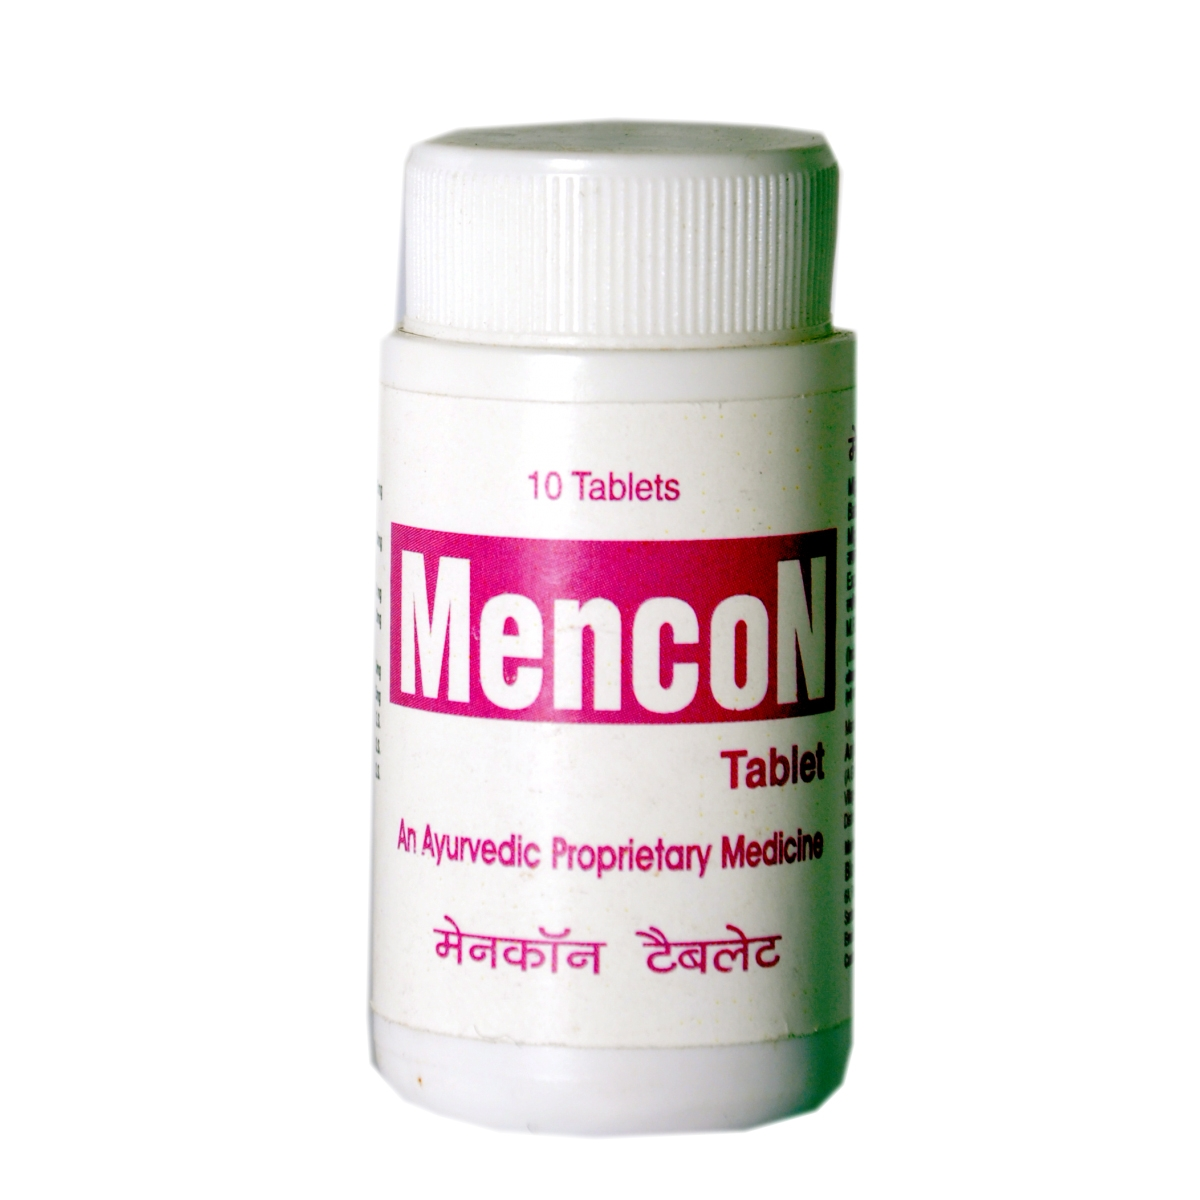 Mencon Tablet In Upper Siang